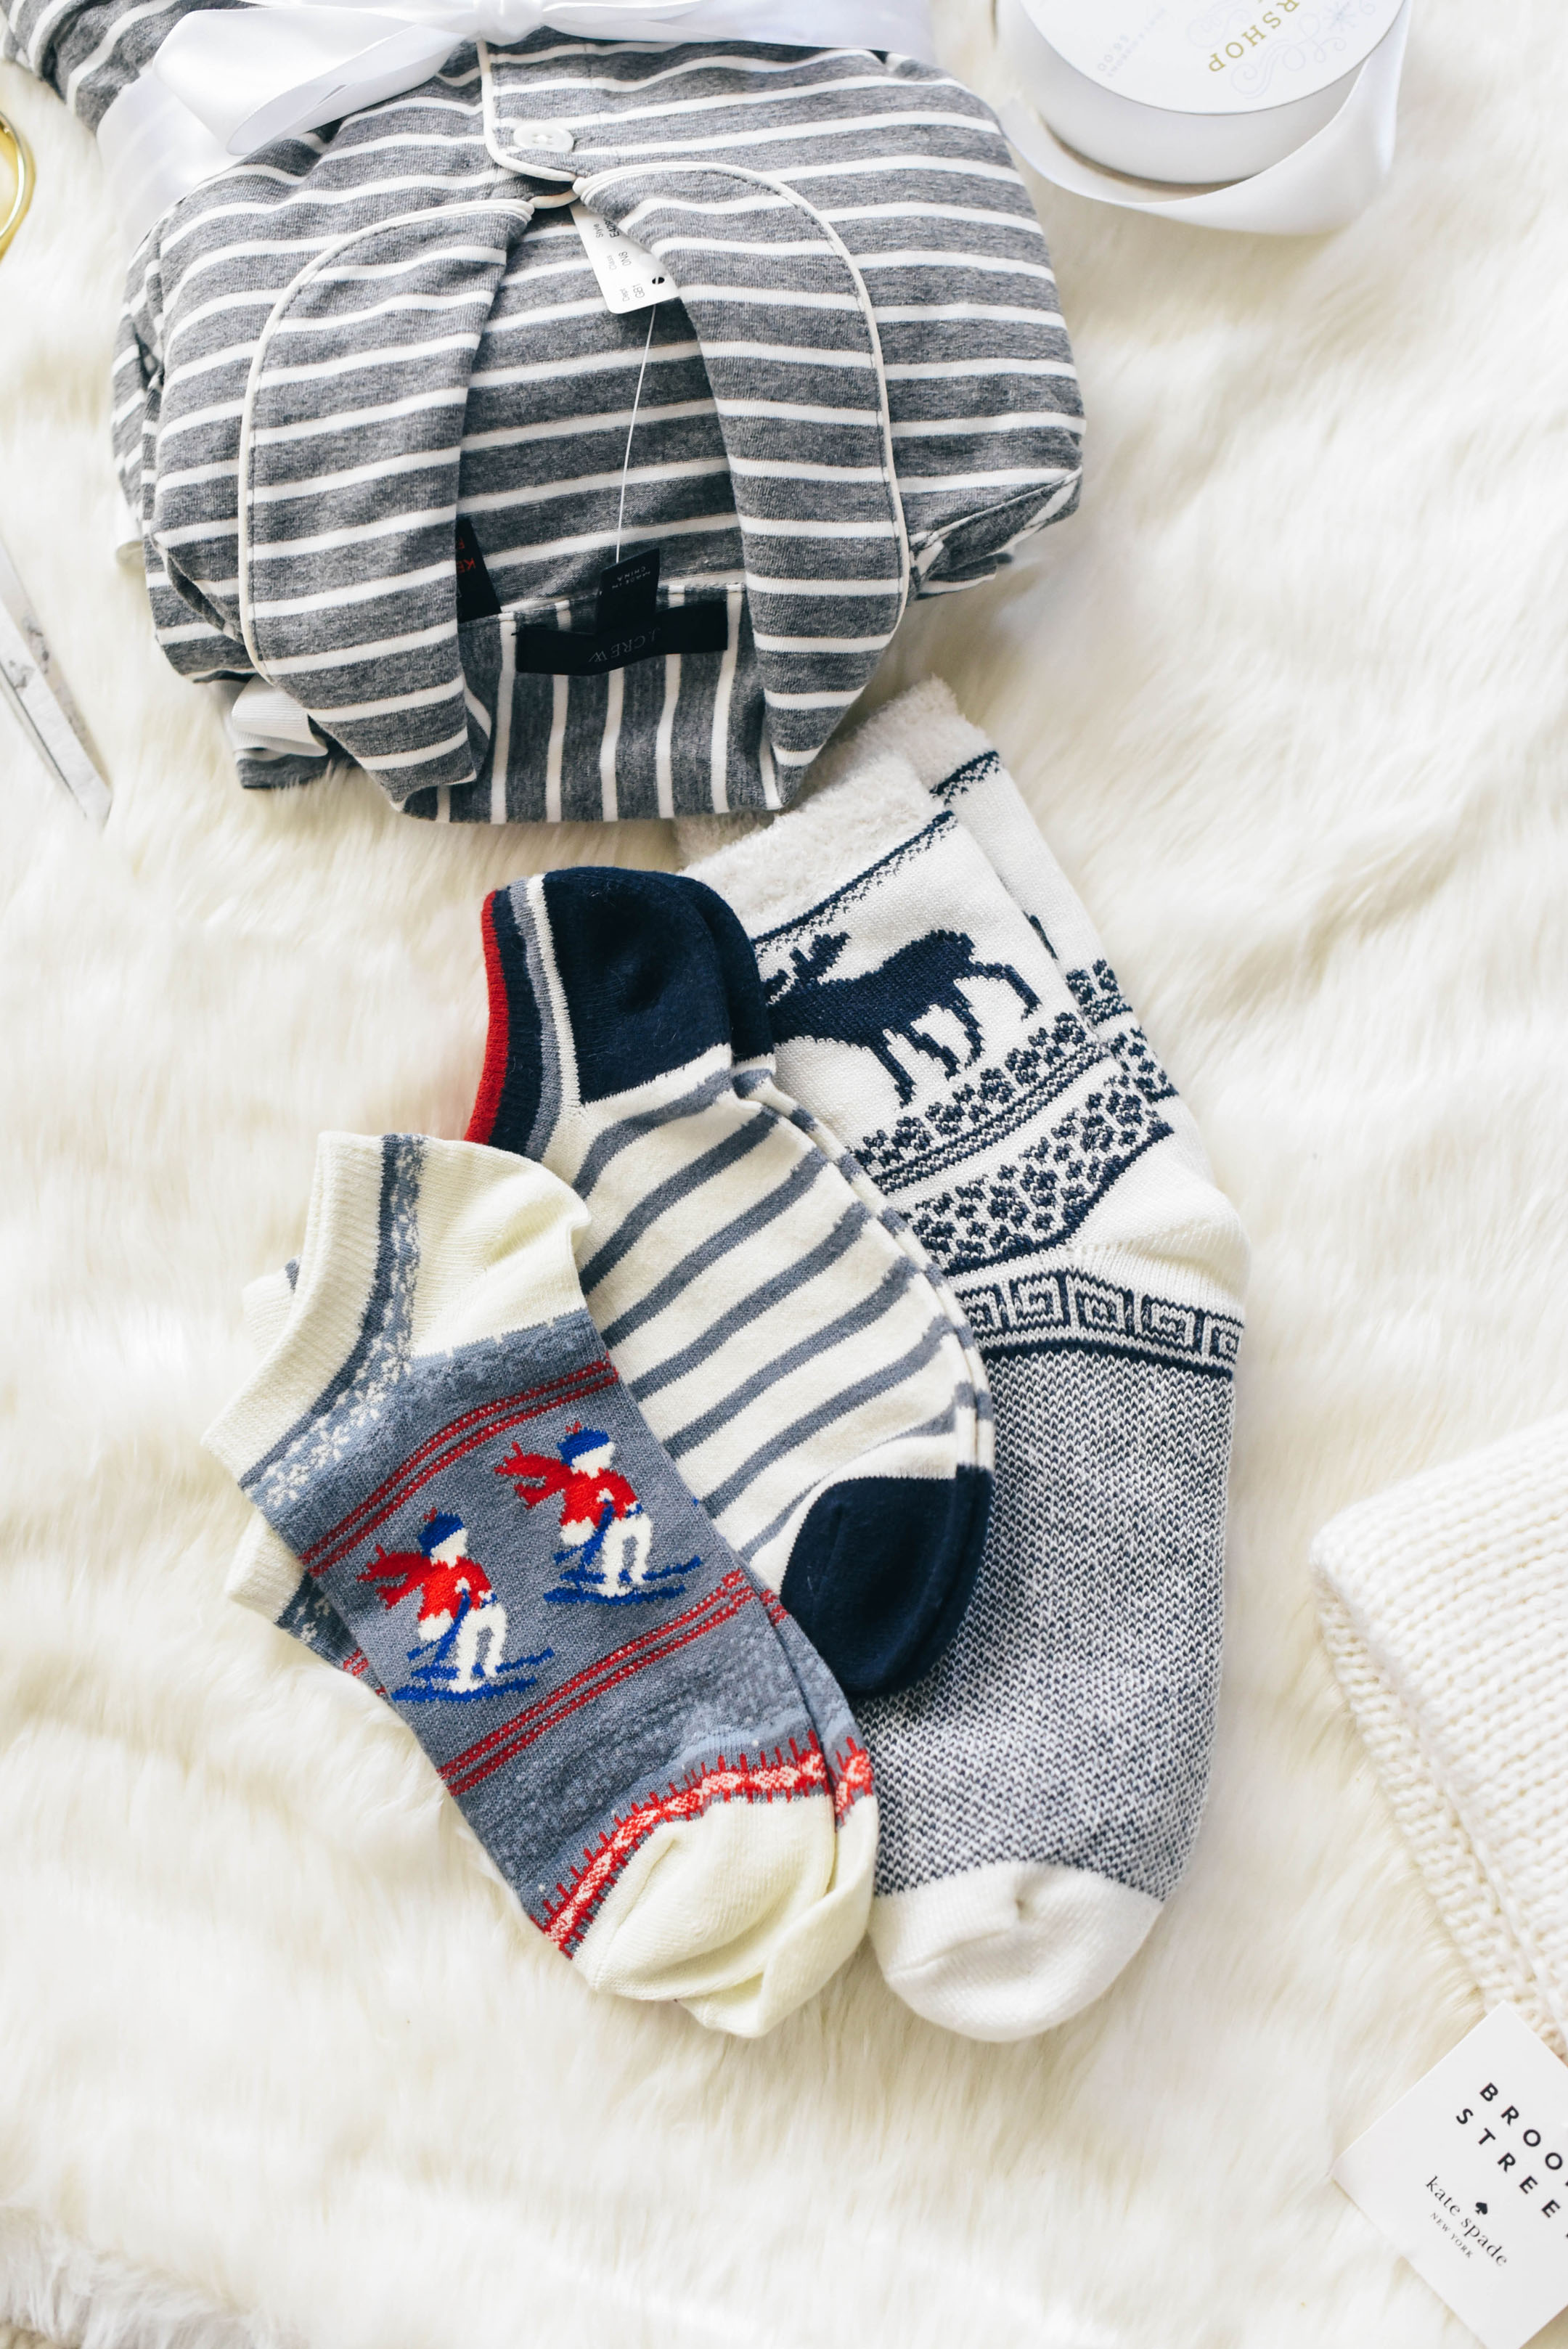 abercrombie-and-fitch-holiday-socks